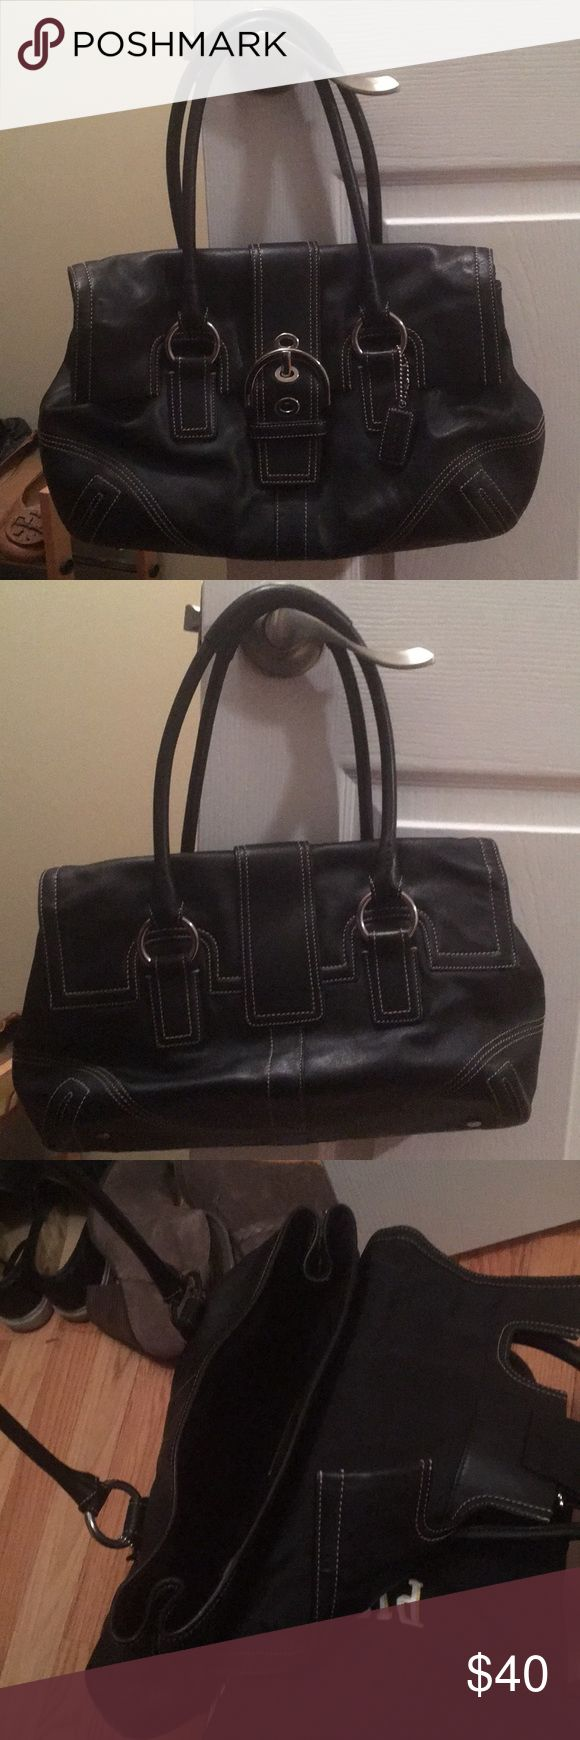 Black leather Coach purse This black leather Coach bag is perfect for an everyday bag. It has silver accents. The bag is used but it is in great condition. Coach Bags Shoulder Bags